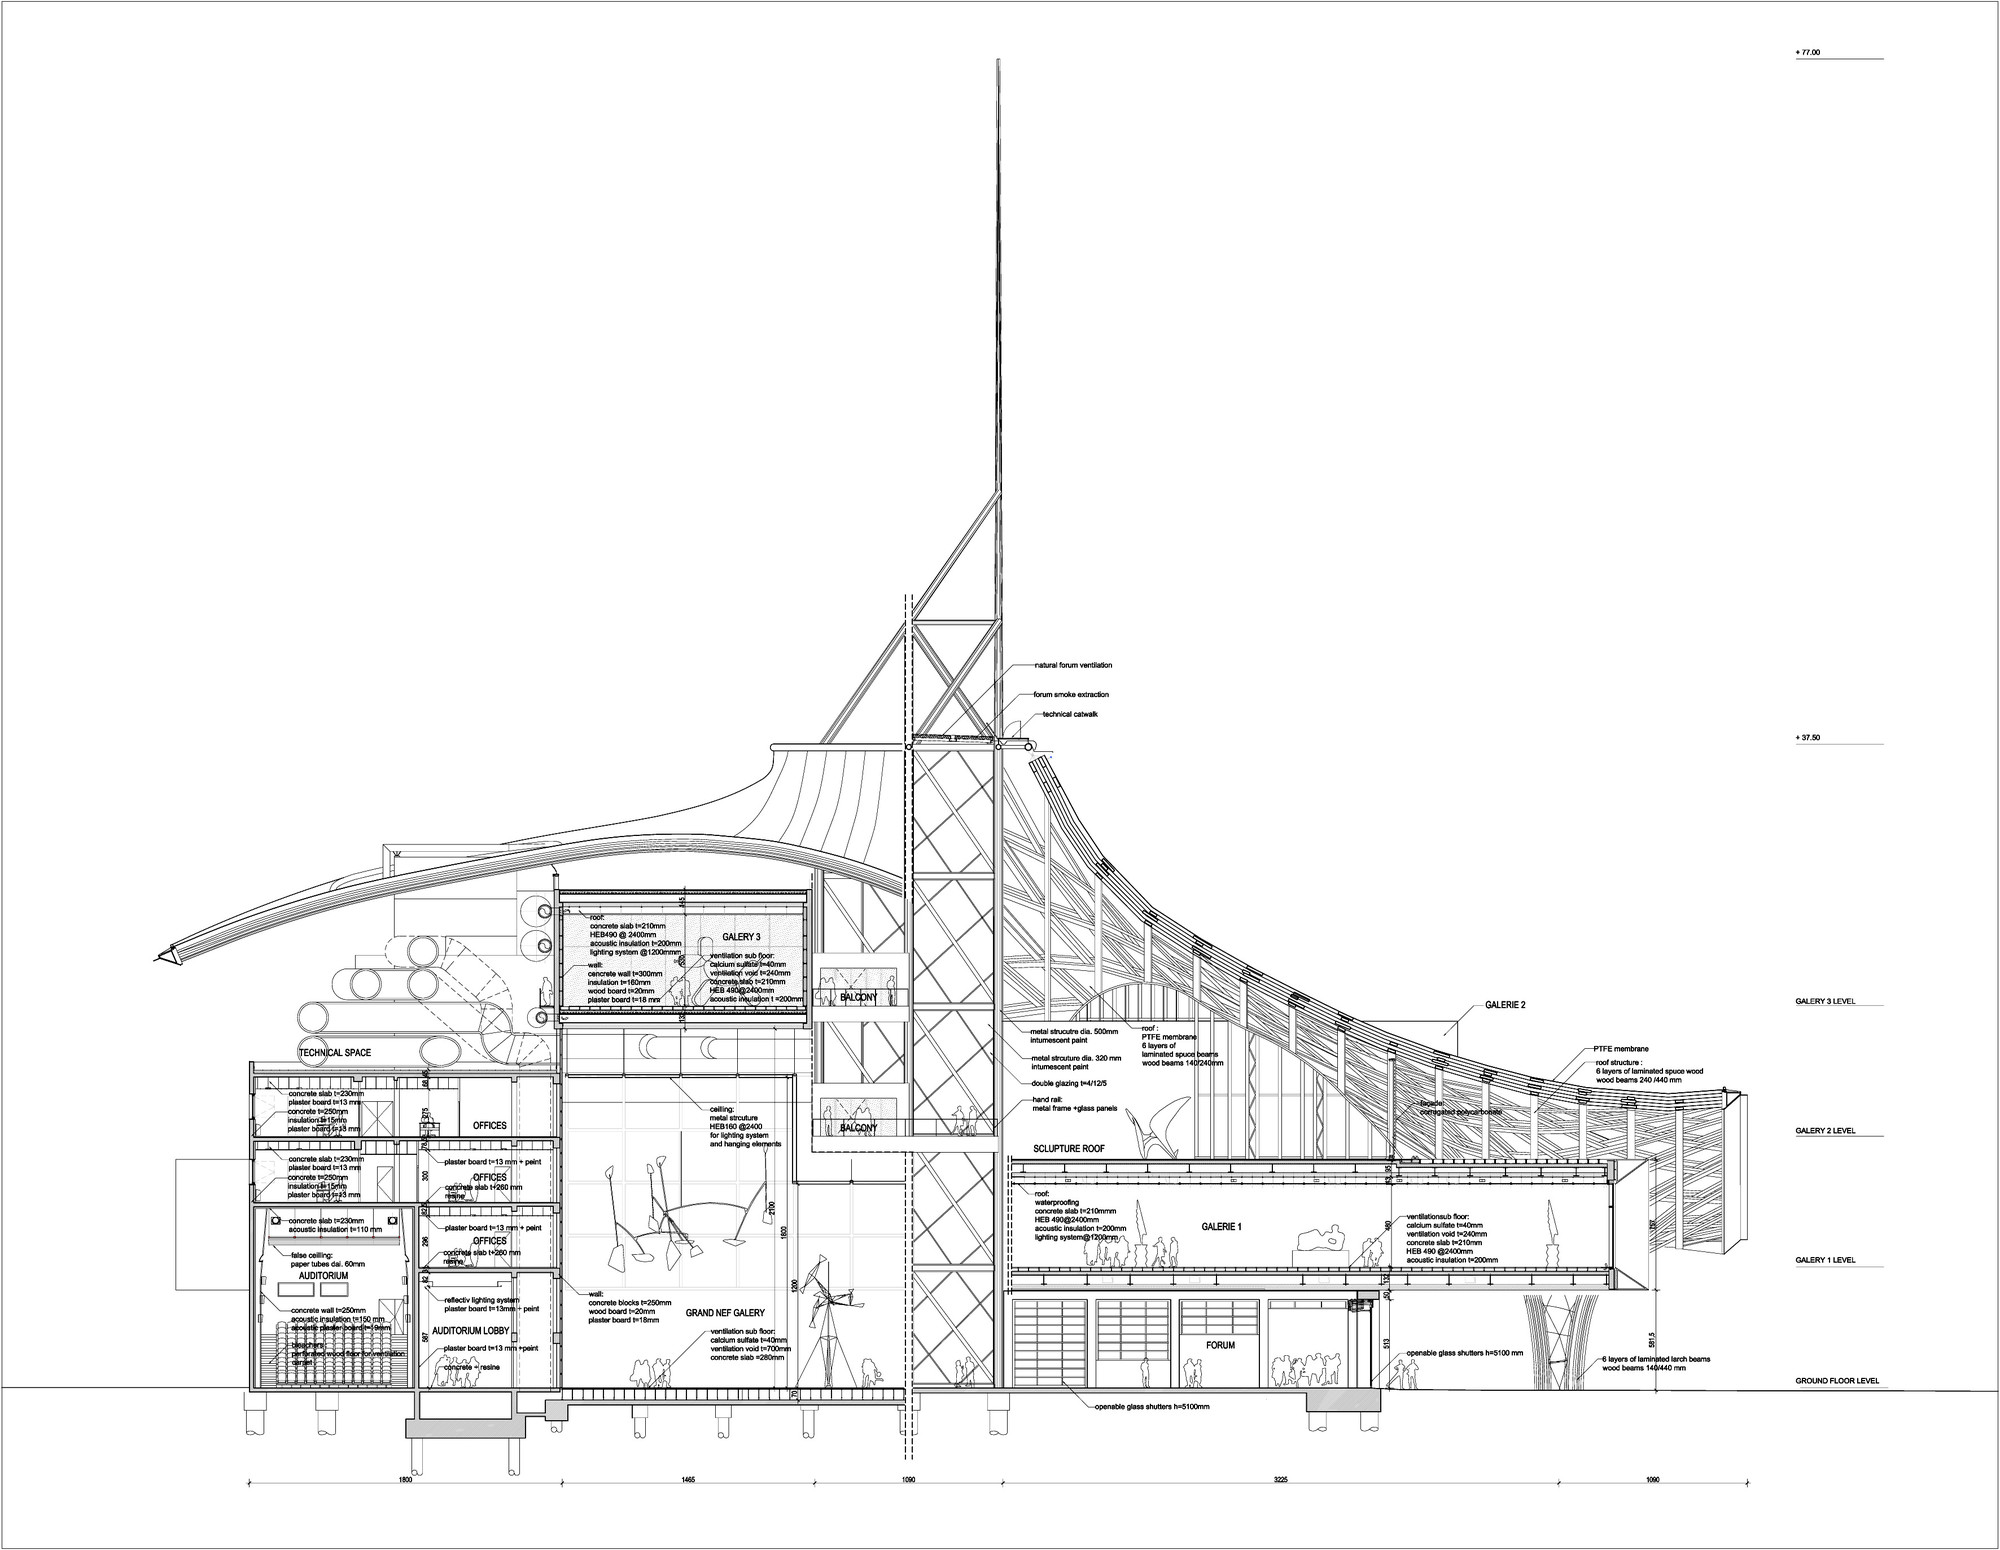 Centre Pompidou Metz Shigeru Ban Architects Archdaily House Wiring Diagram France Never Miss A Good Story Subscribe To Our Daily Newsletter